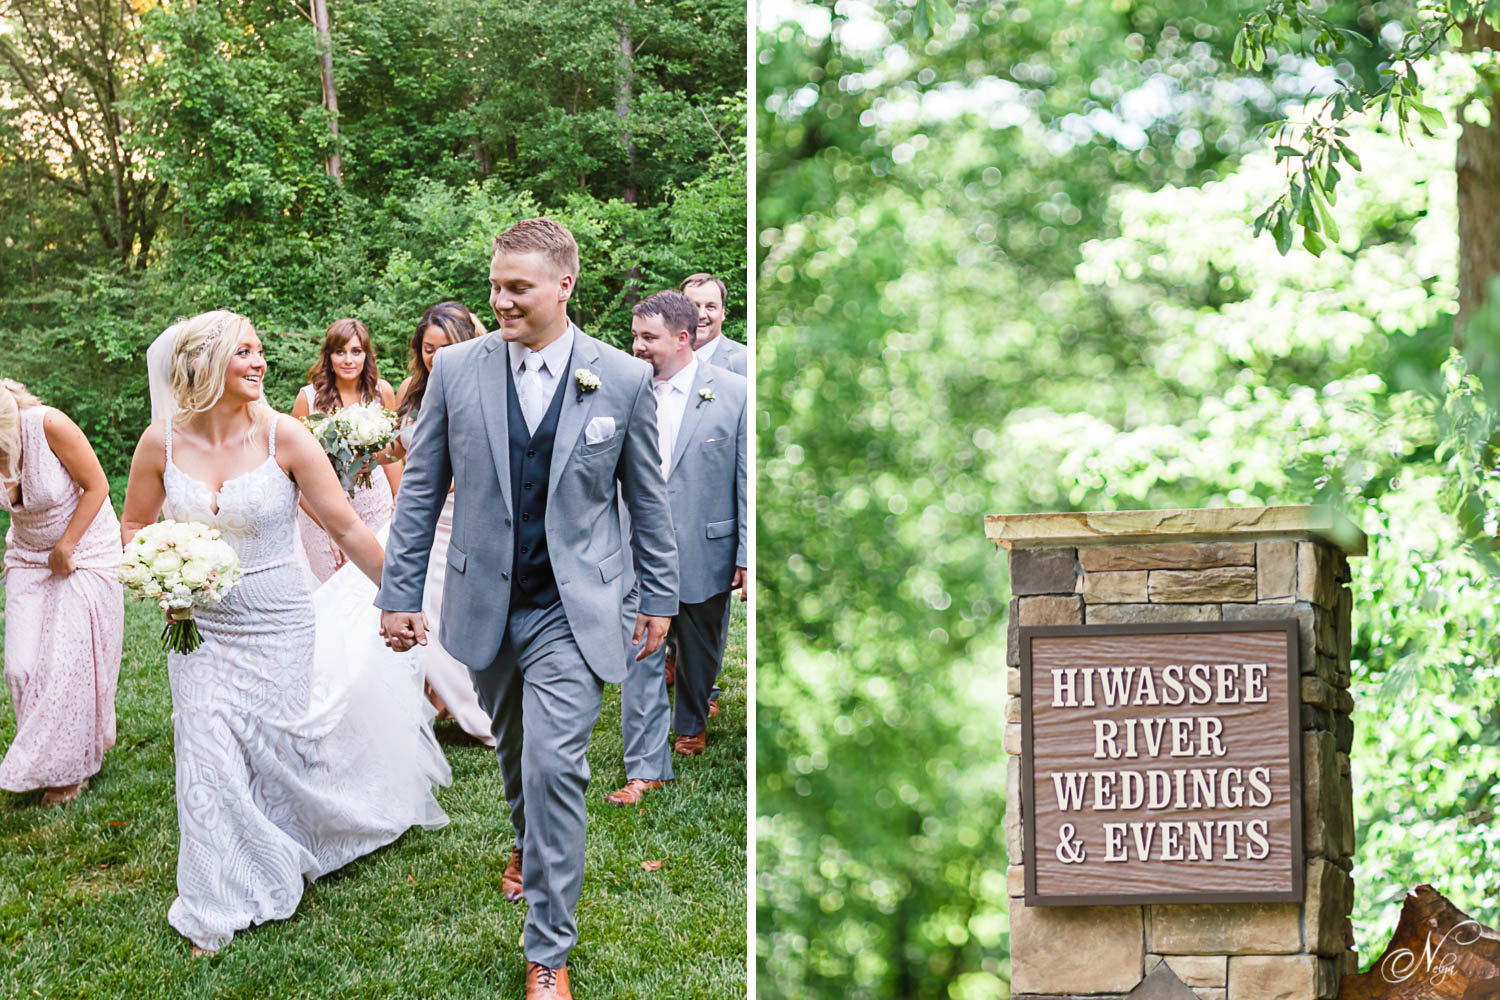 bridal partywalking with bride and groom in front laughing and talking. And stone sign at the entrence to hiwassee river weddings on Moss Road.